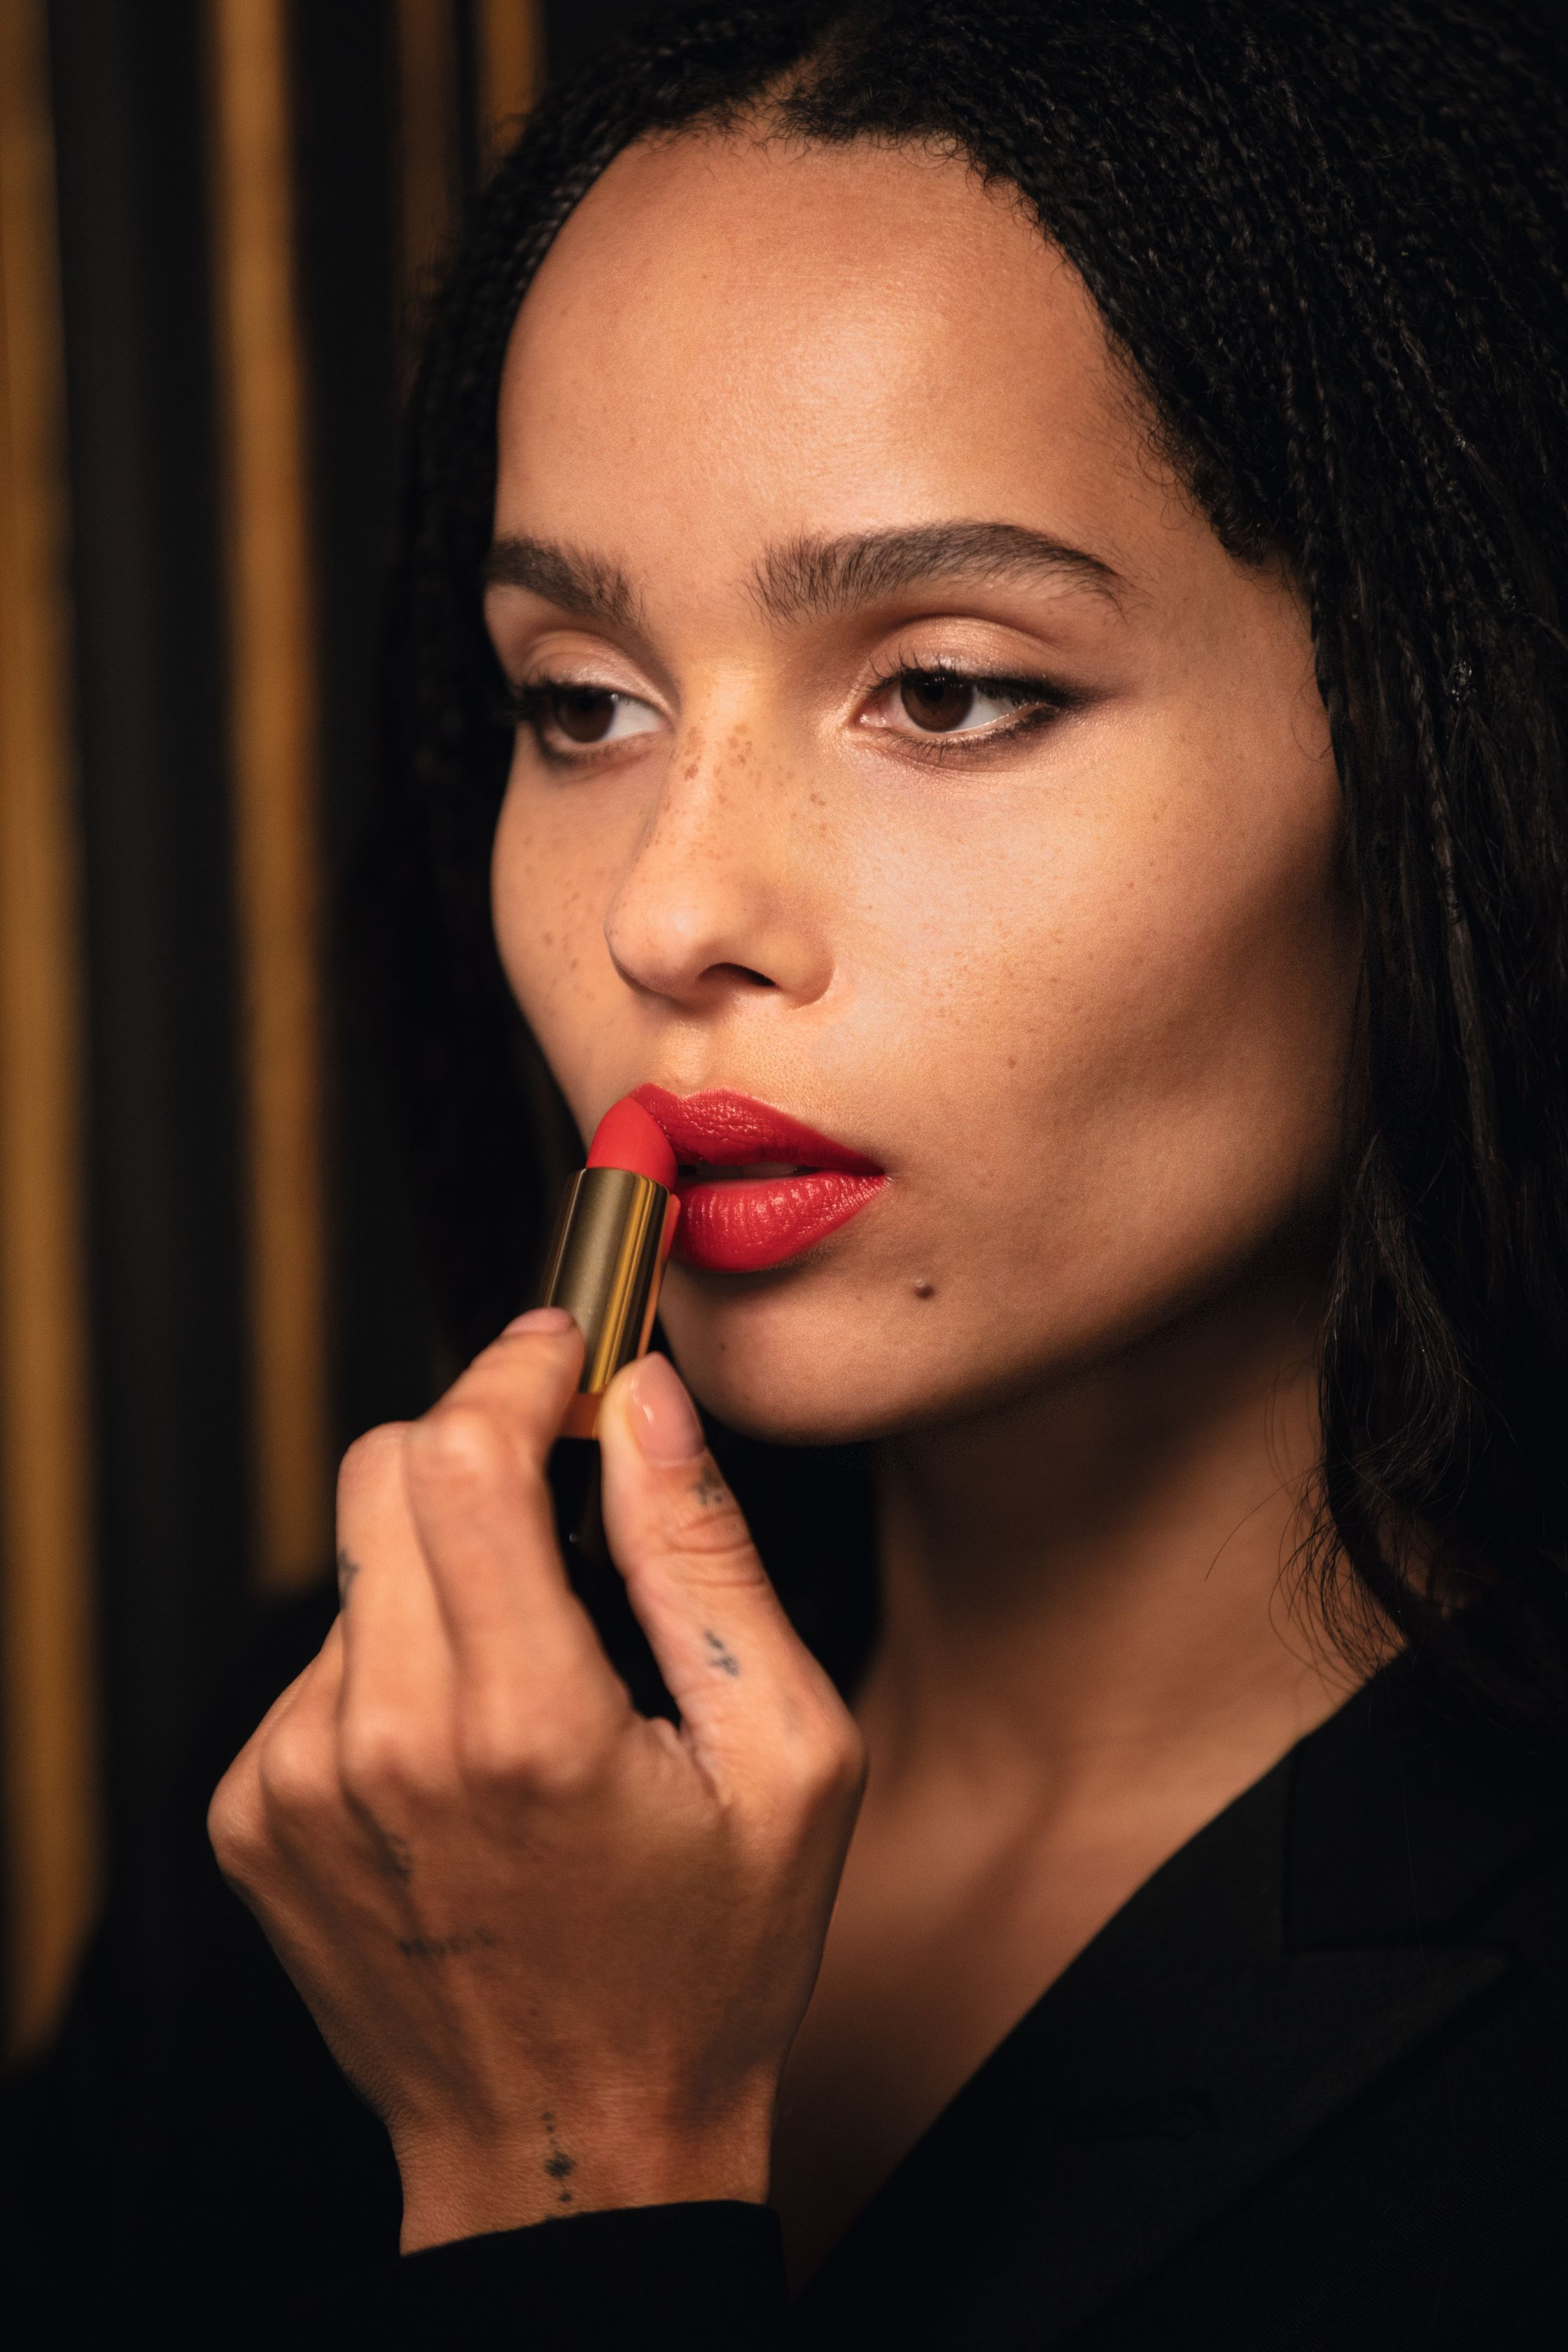 Zoë Kravitz Just Launched a Lipstick Collection with YSL Beauty